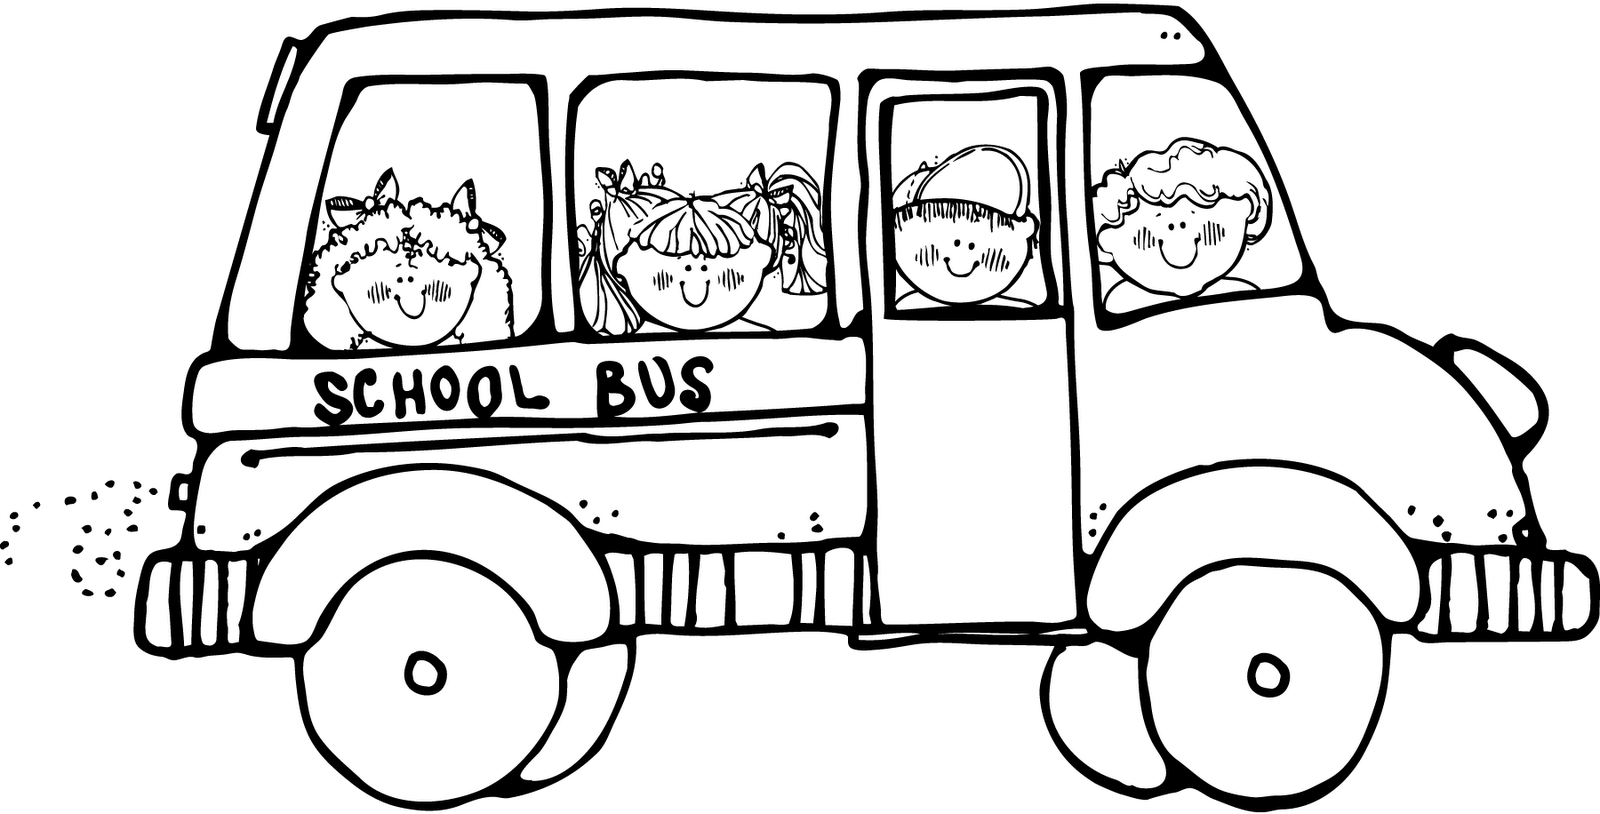 School bus safety coloring. Melonheadz clipart field trip